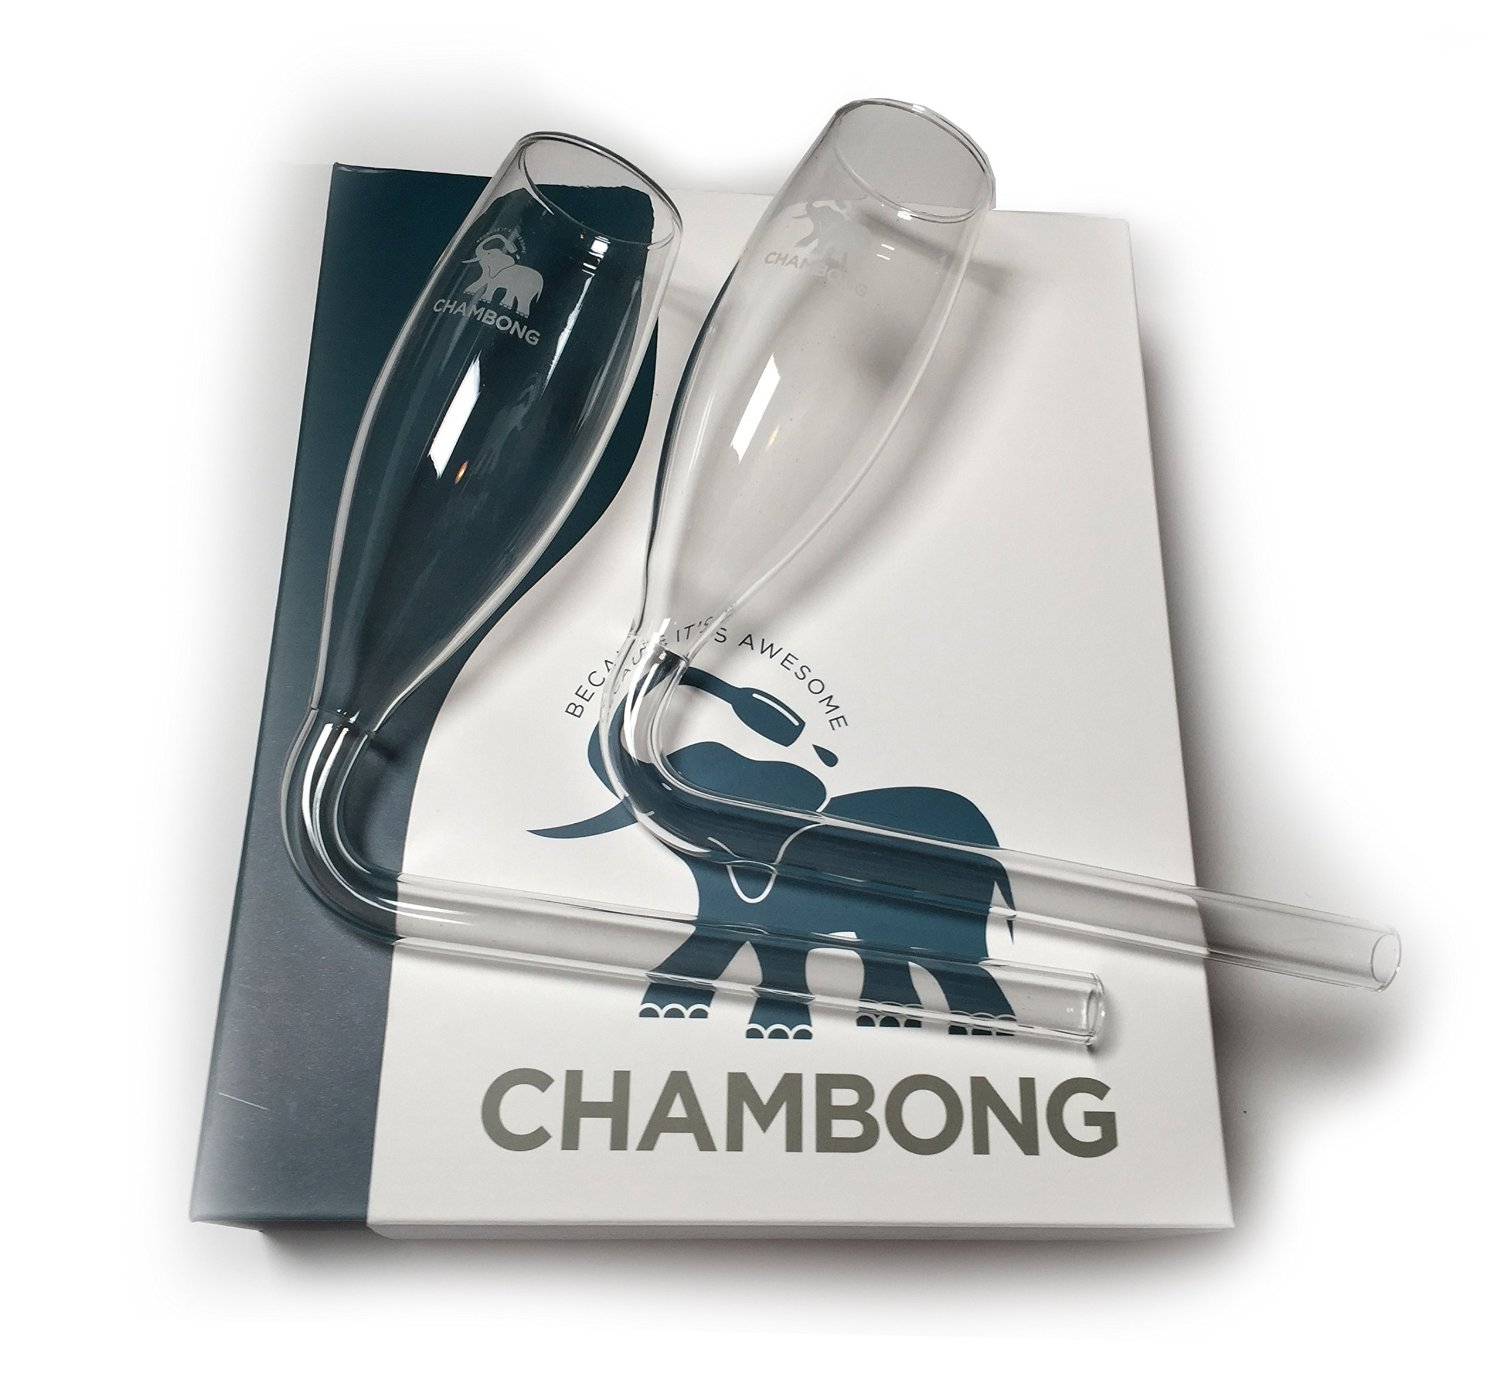 chambong champagne funnel